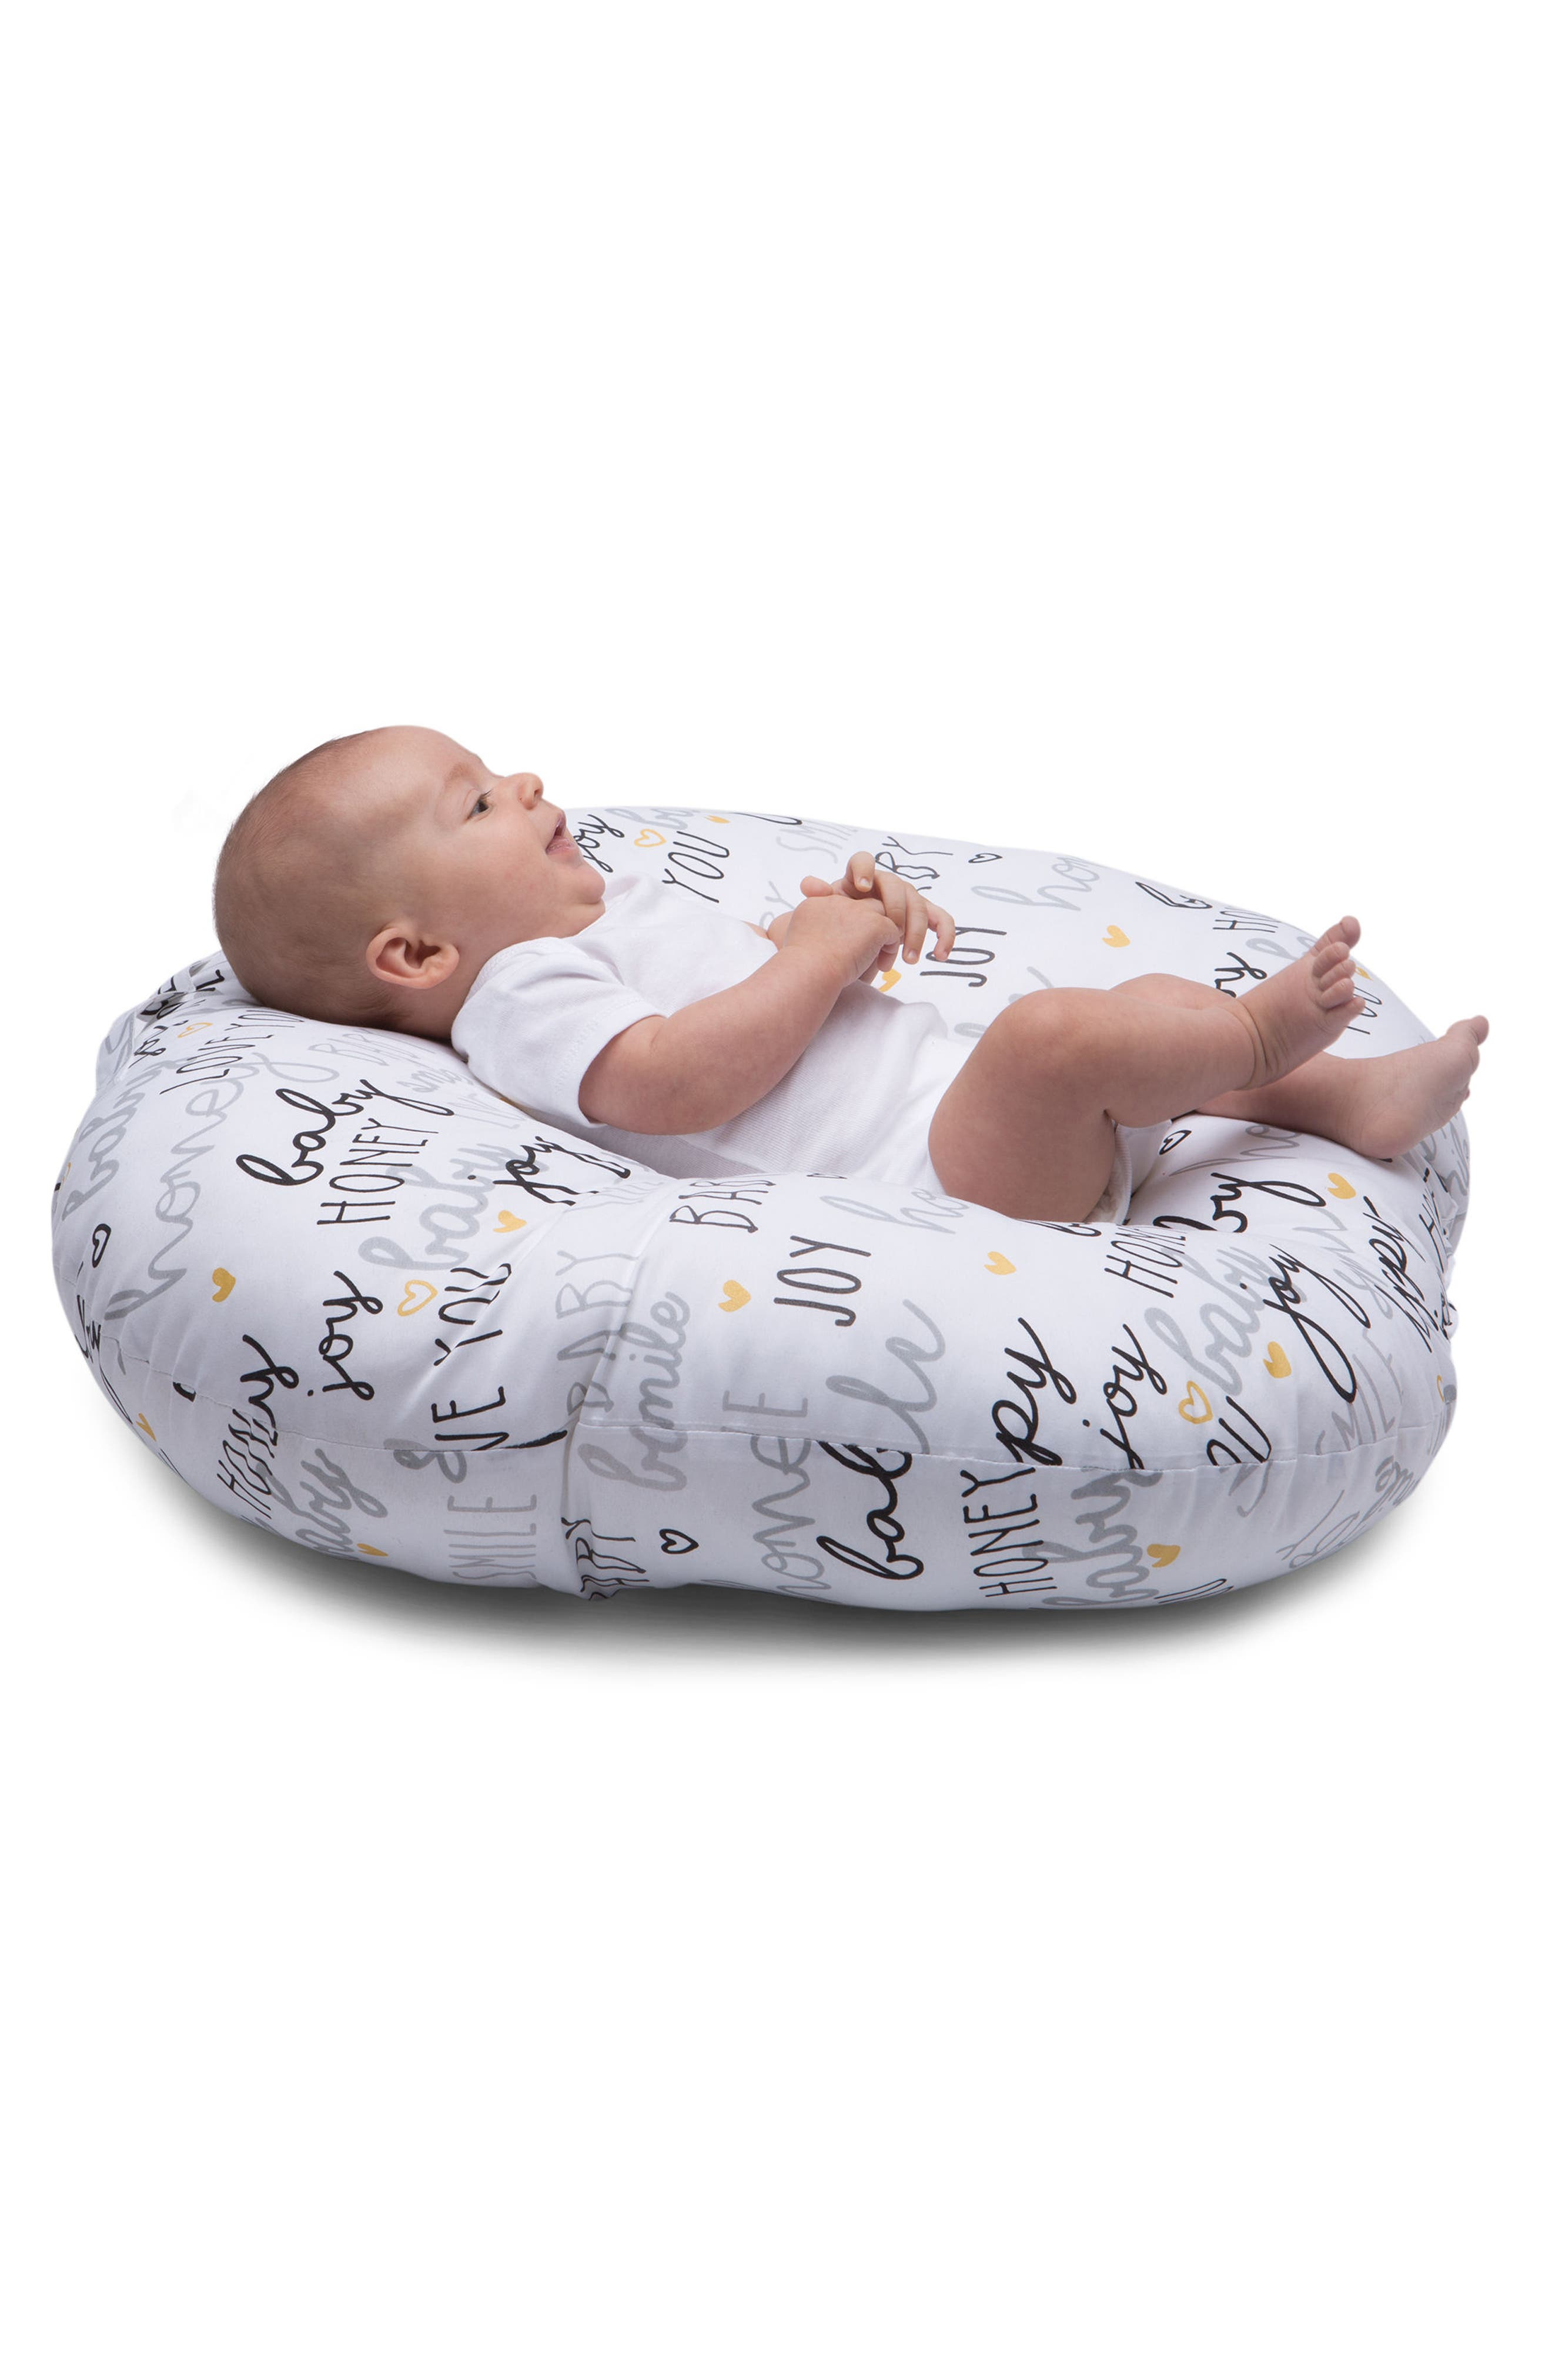 Newborn Lounger,                             Alternate thumbnail 6, color,                             BLACK AND WHITE